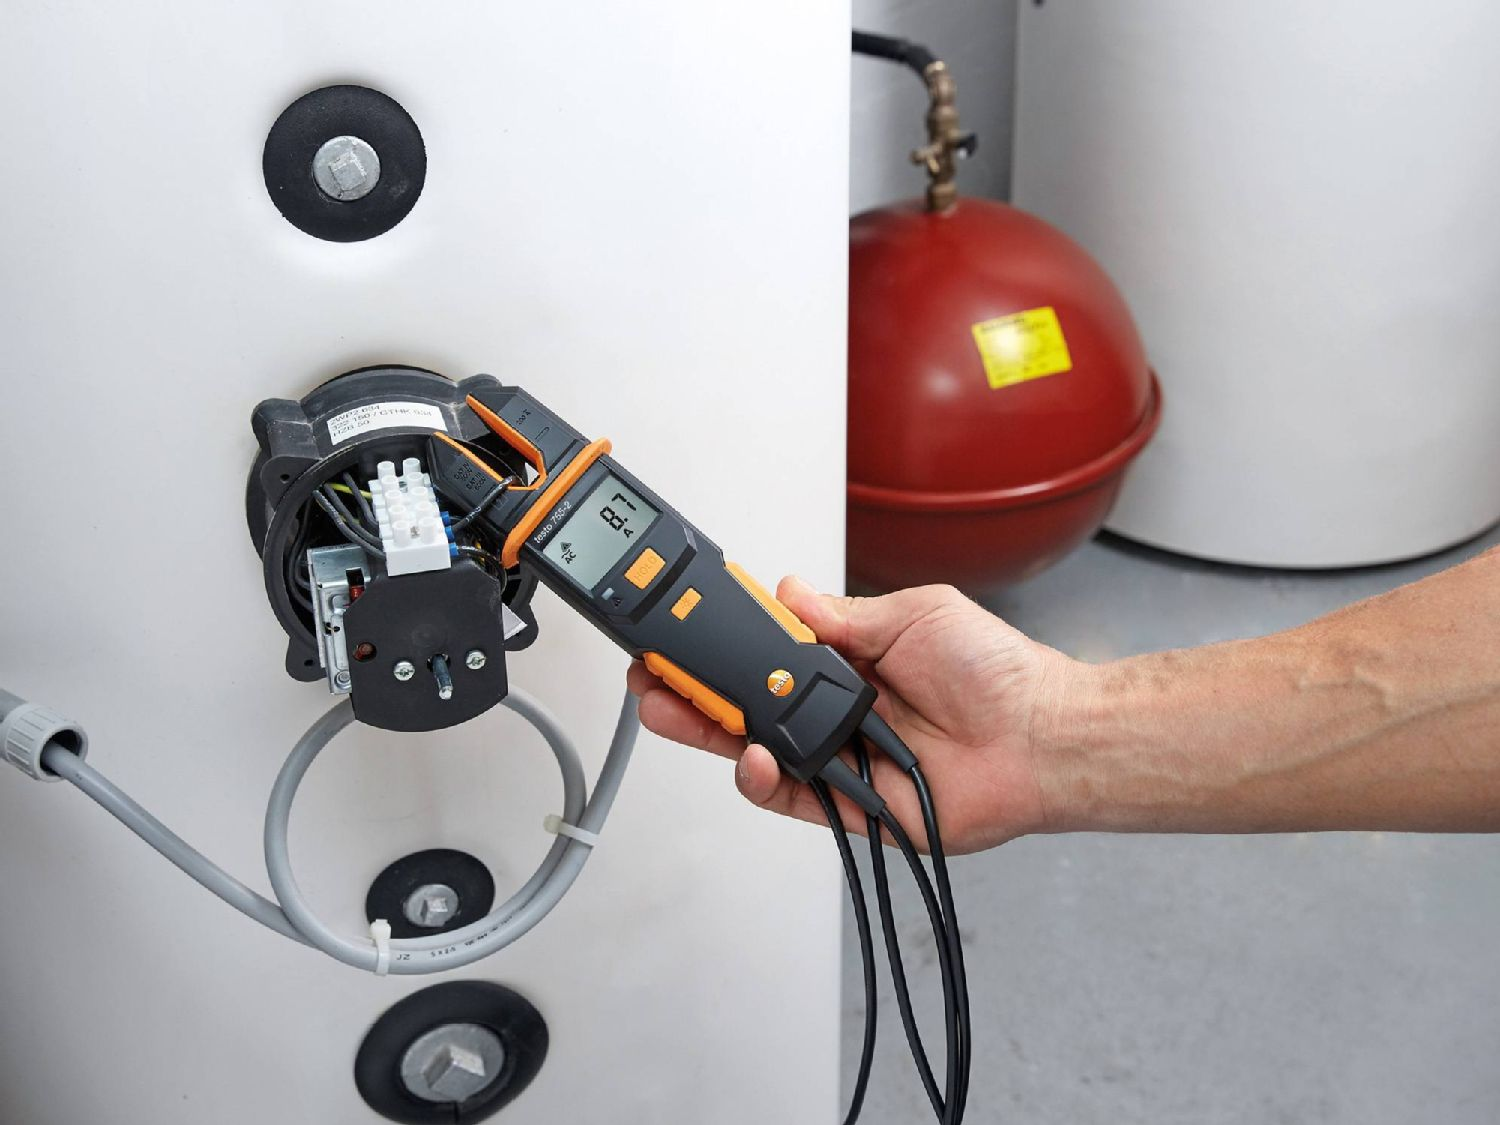 Electrical measurement at heating systems with electrical tester